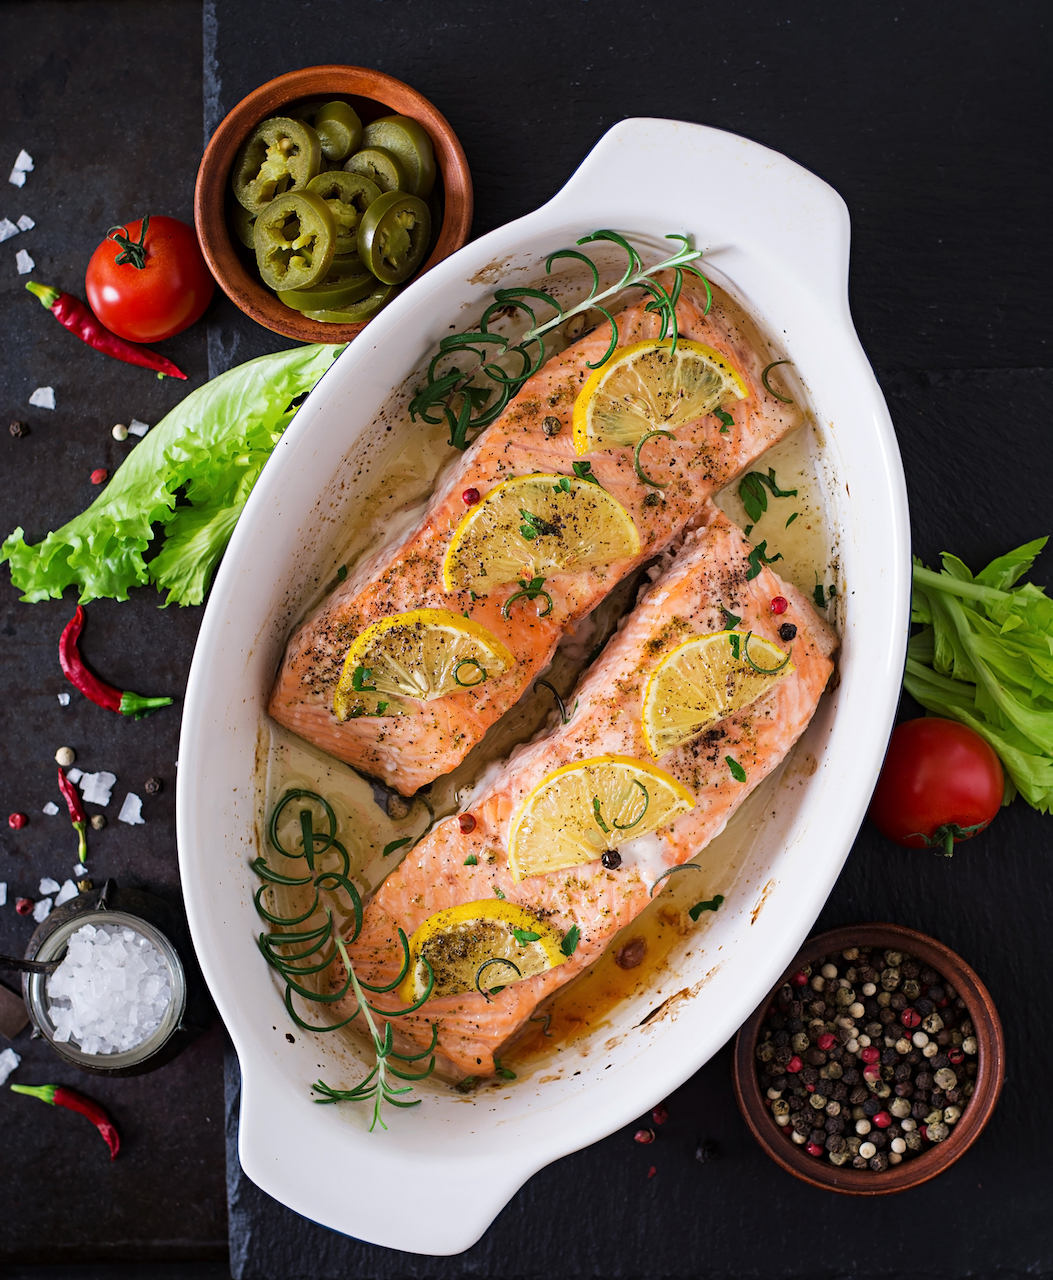 Salmon baked with lemon, herbs, and olive oil.